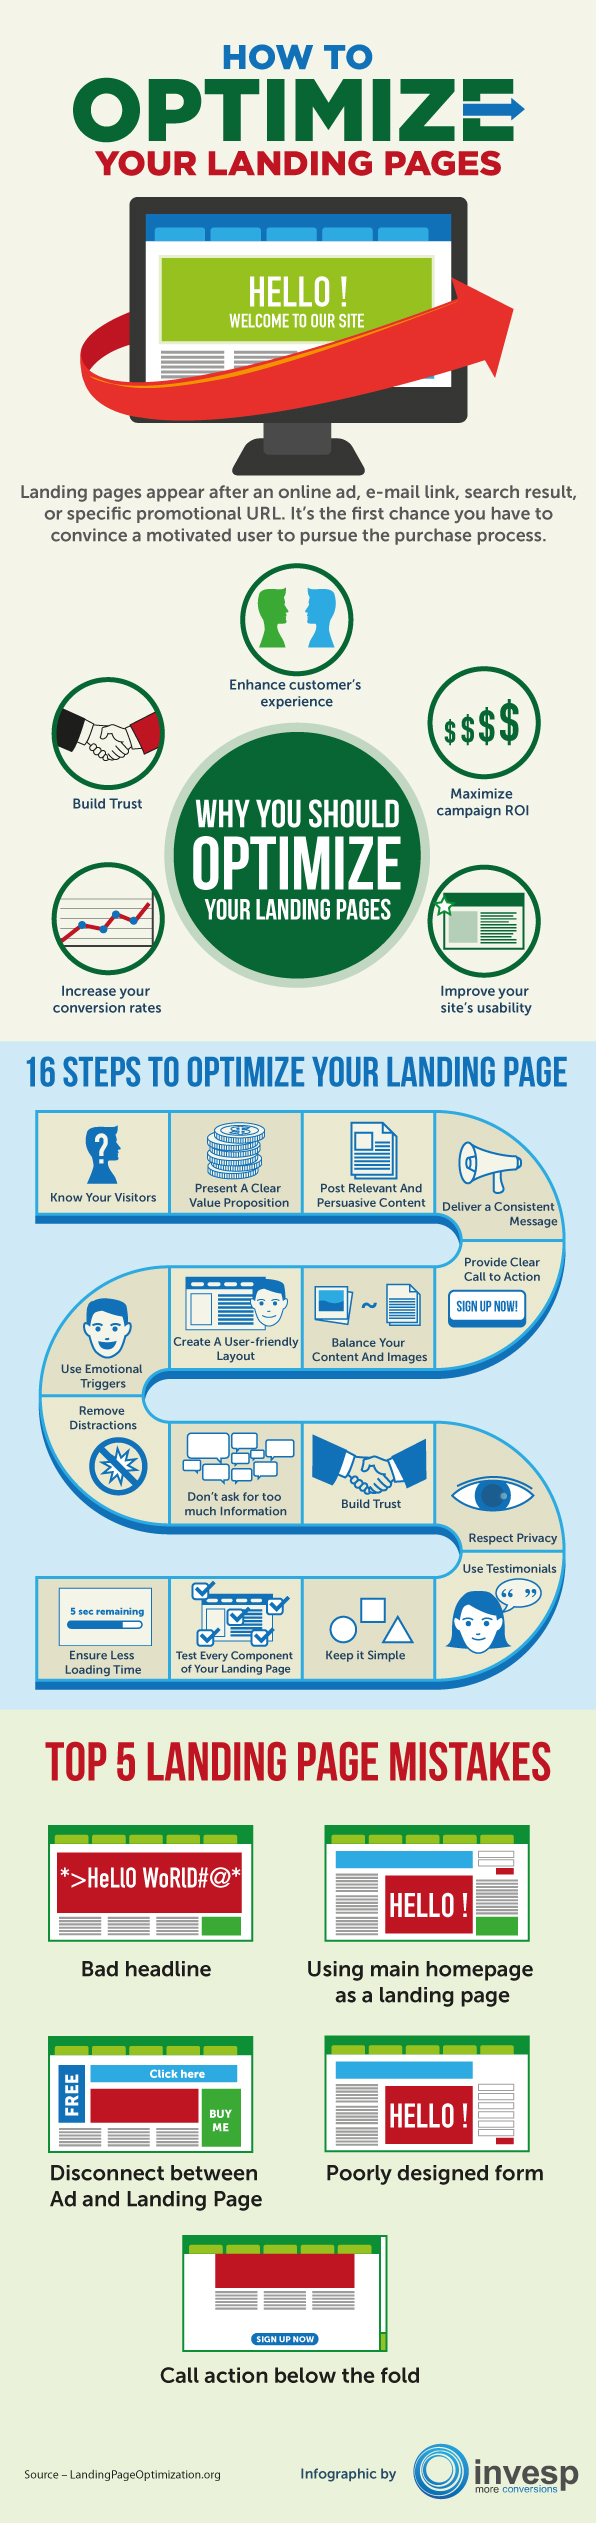 How to Optimize Your Landing Page by Invesp